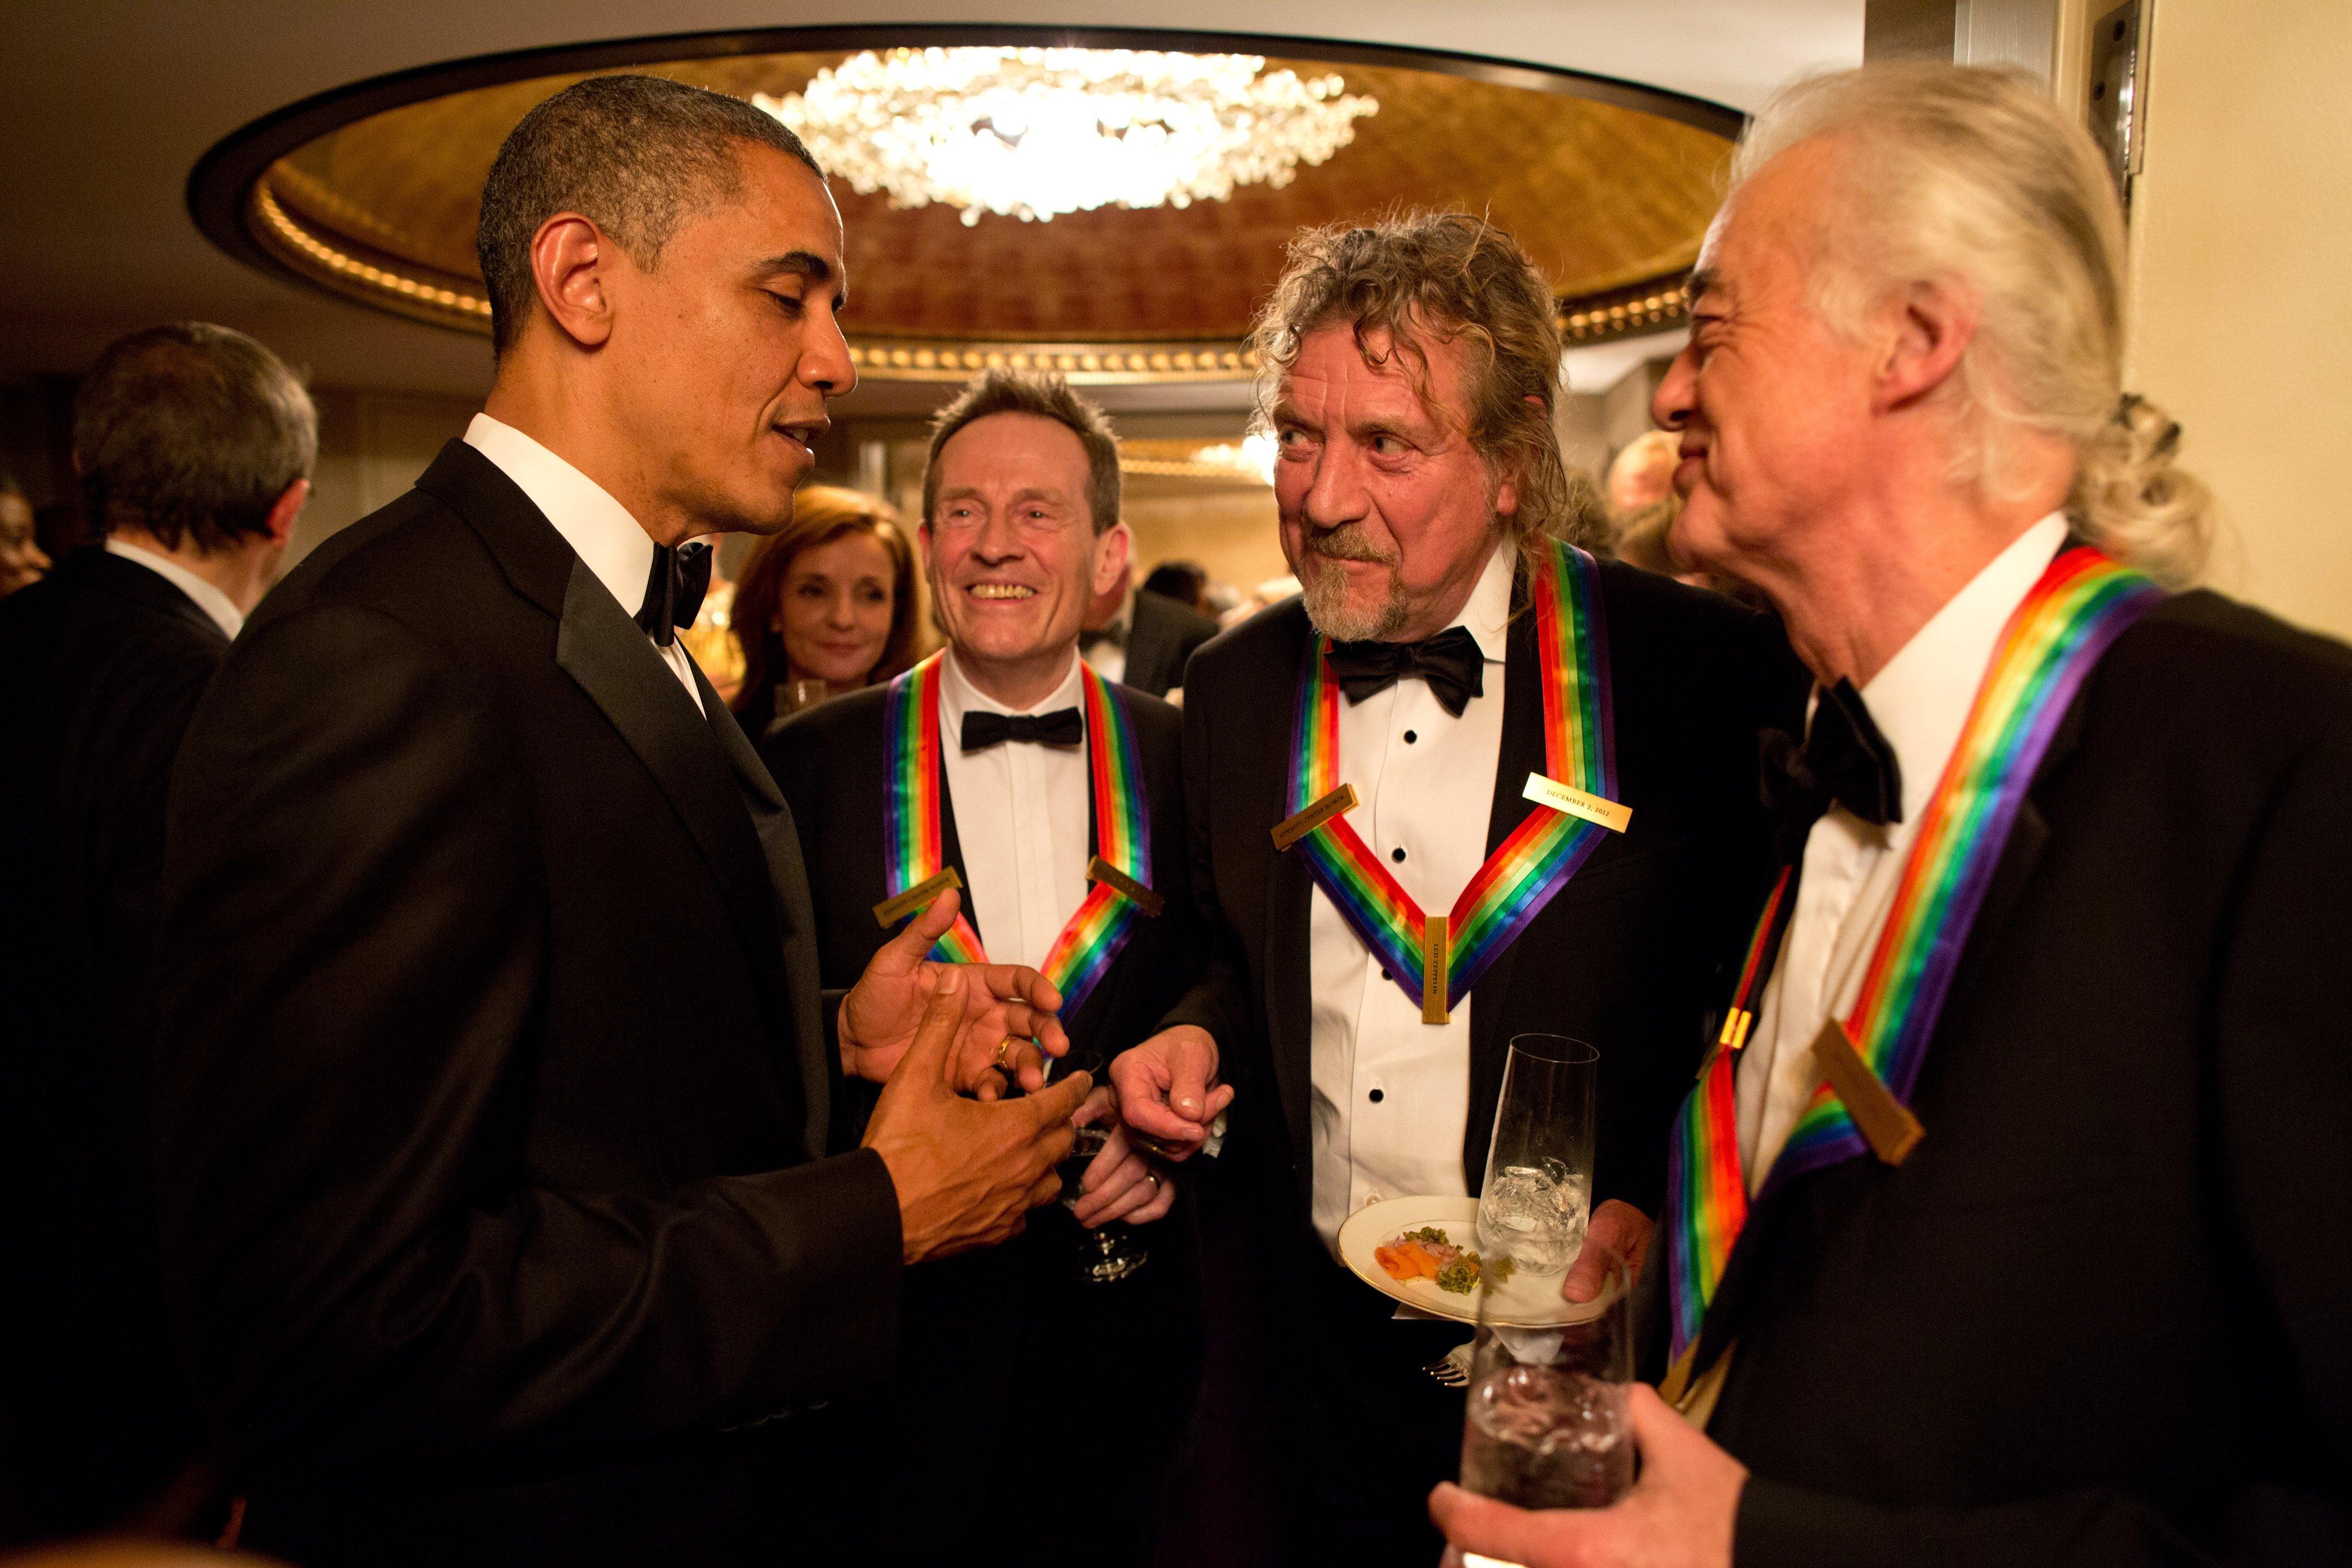 I tre Led Zeppelin superstiti con Barack Obama nel 2012 (fonte: Wikipedia.org)